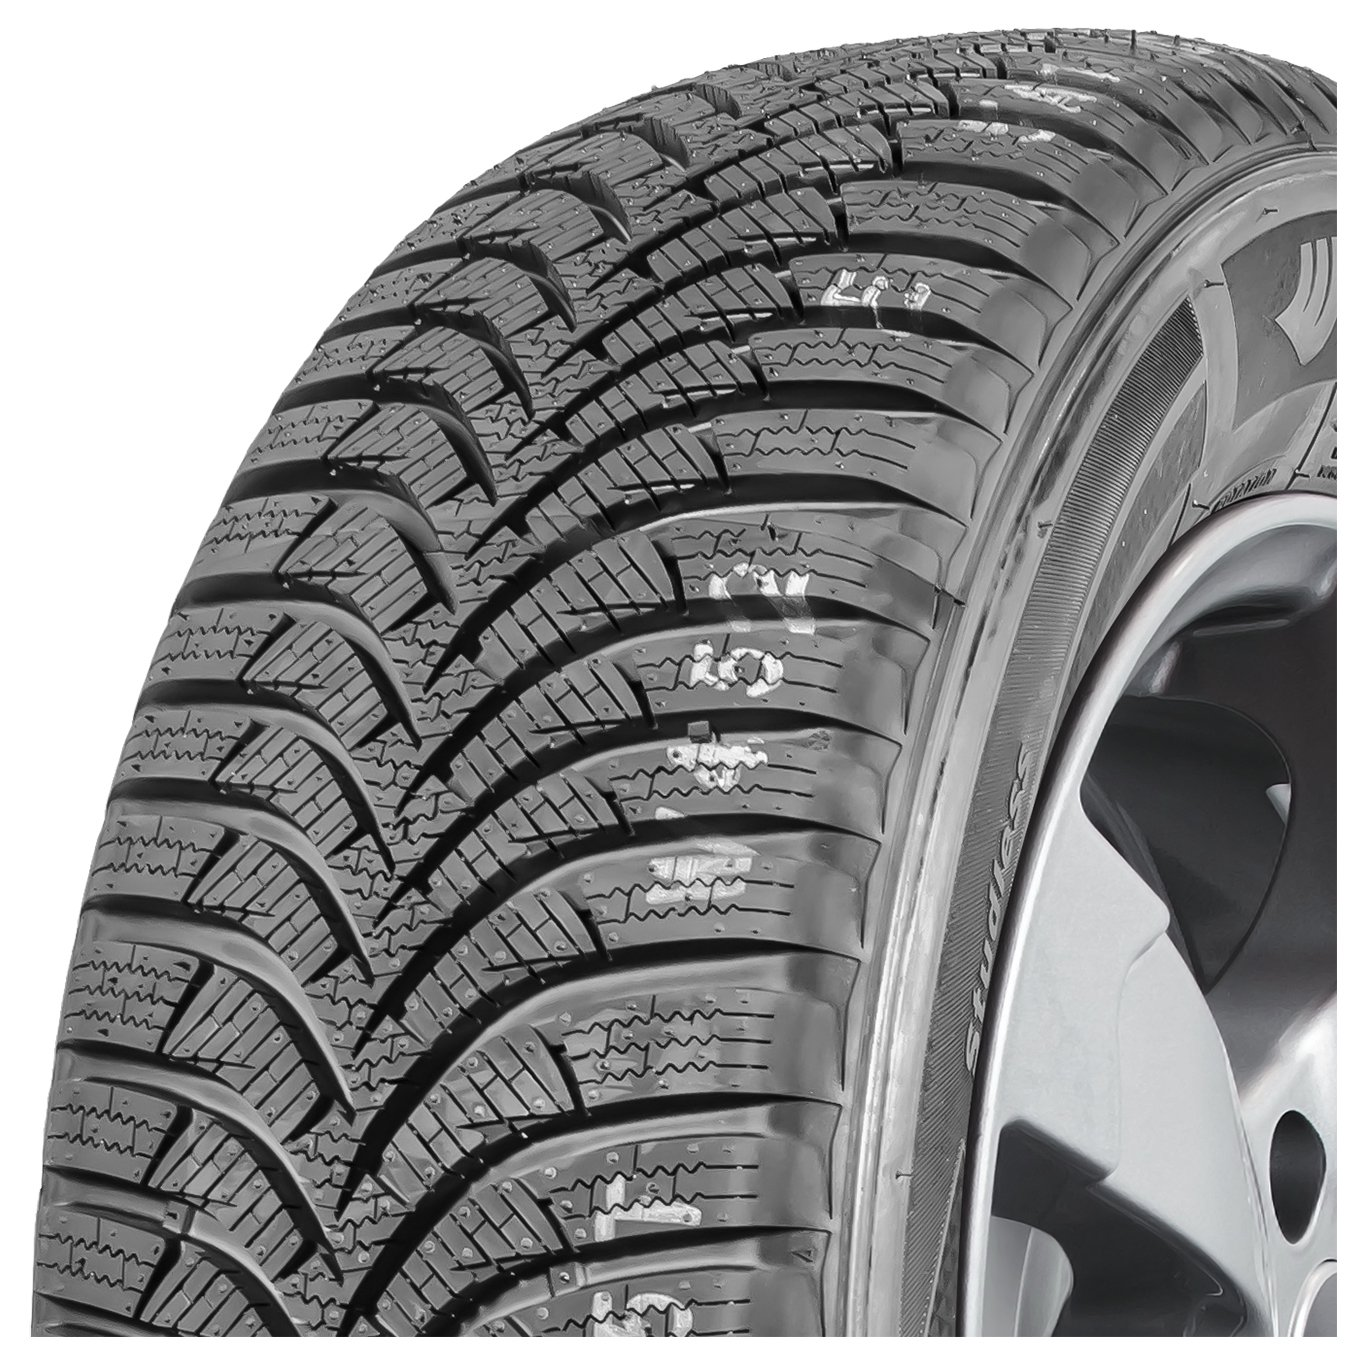 Hankook W452 WINTER ICEPT RS2 XL - 165/70/R14 85T - E/C/71dB - Winterr WINTER I' CEPT RS2 W452 XL